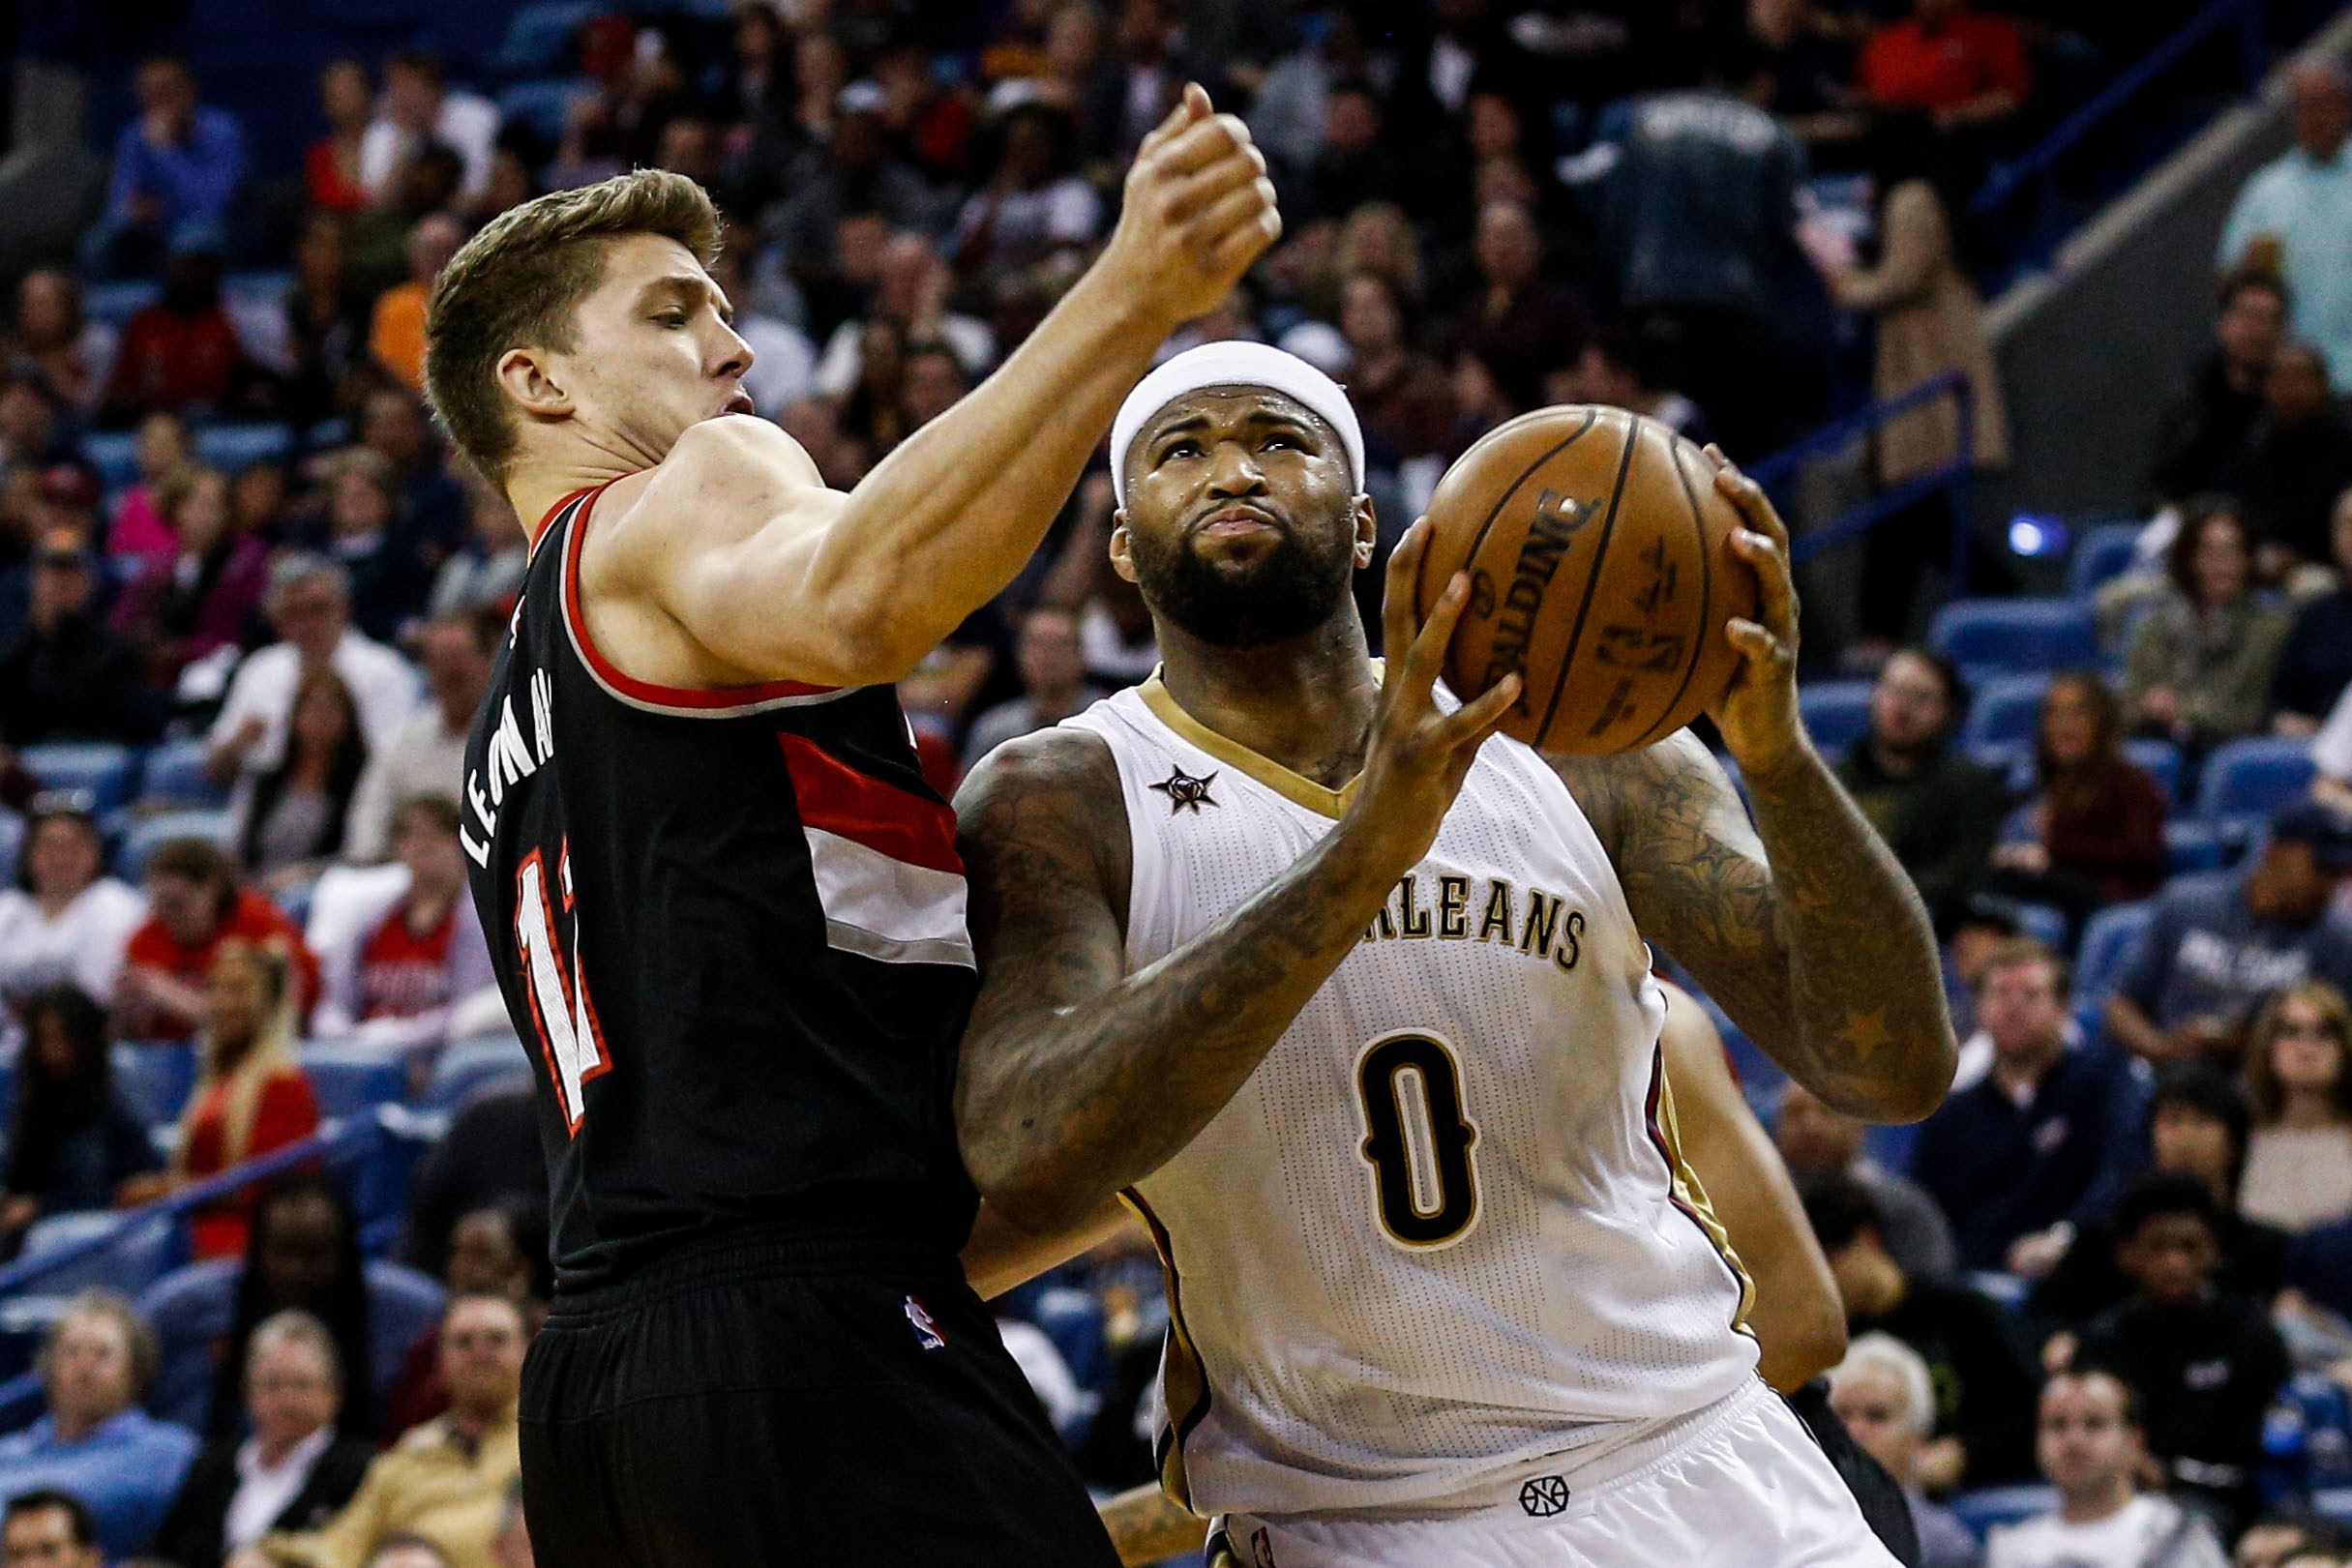 9942884-nba-portland-trail-blazers-at-new-orleans-pelicans